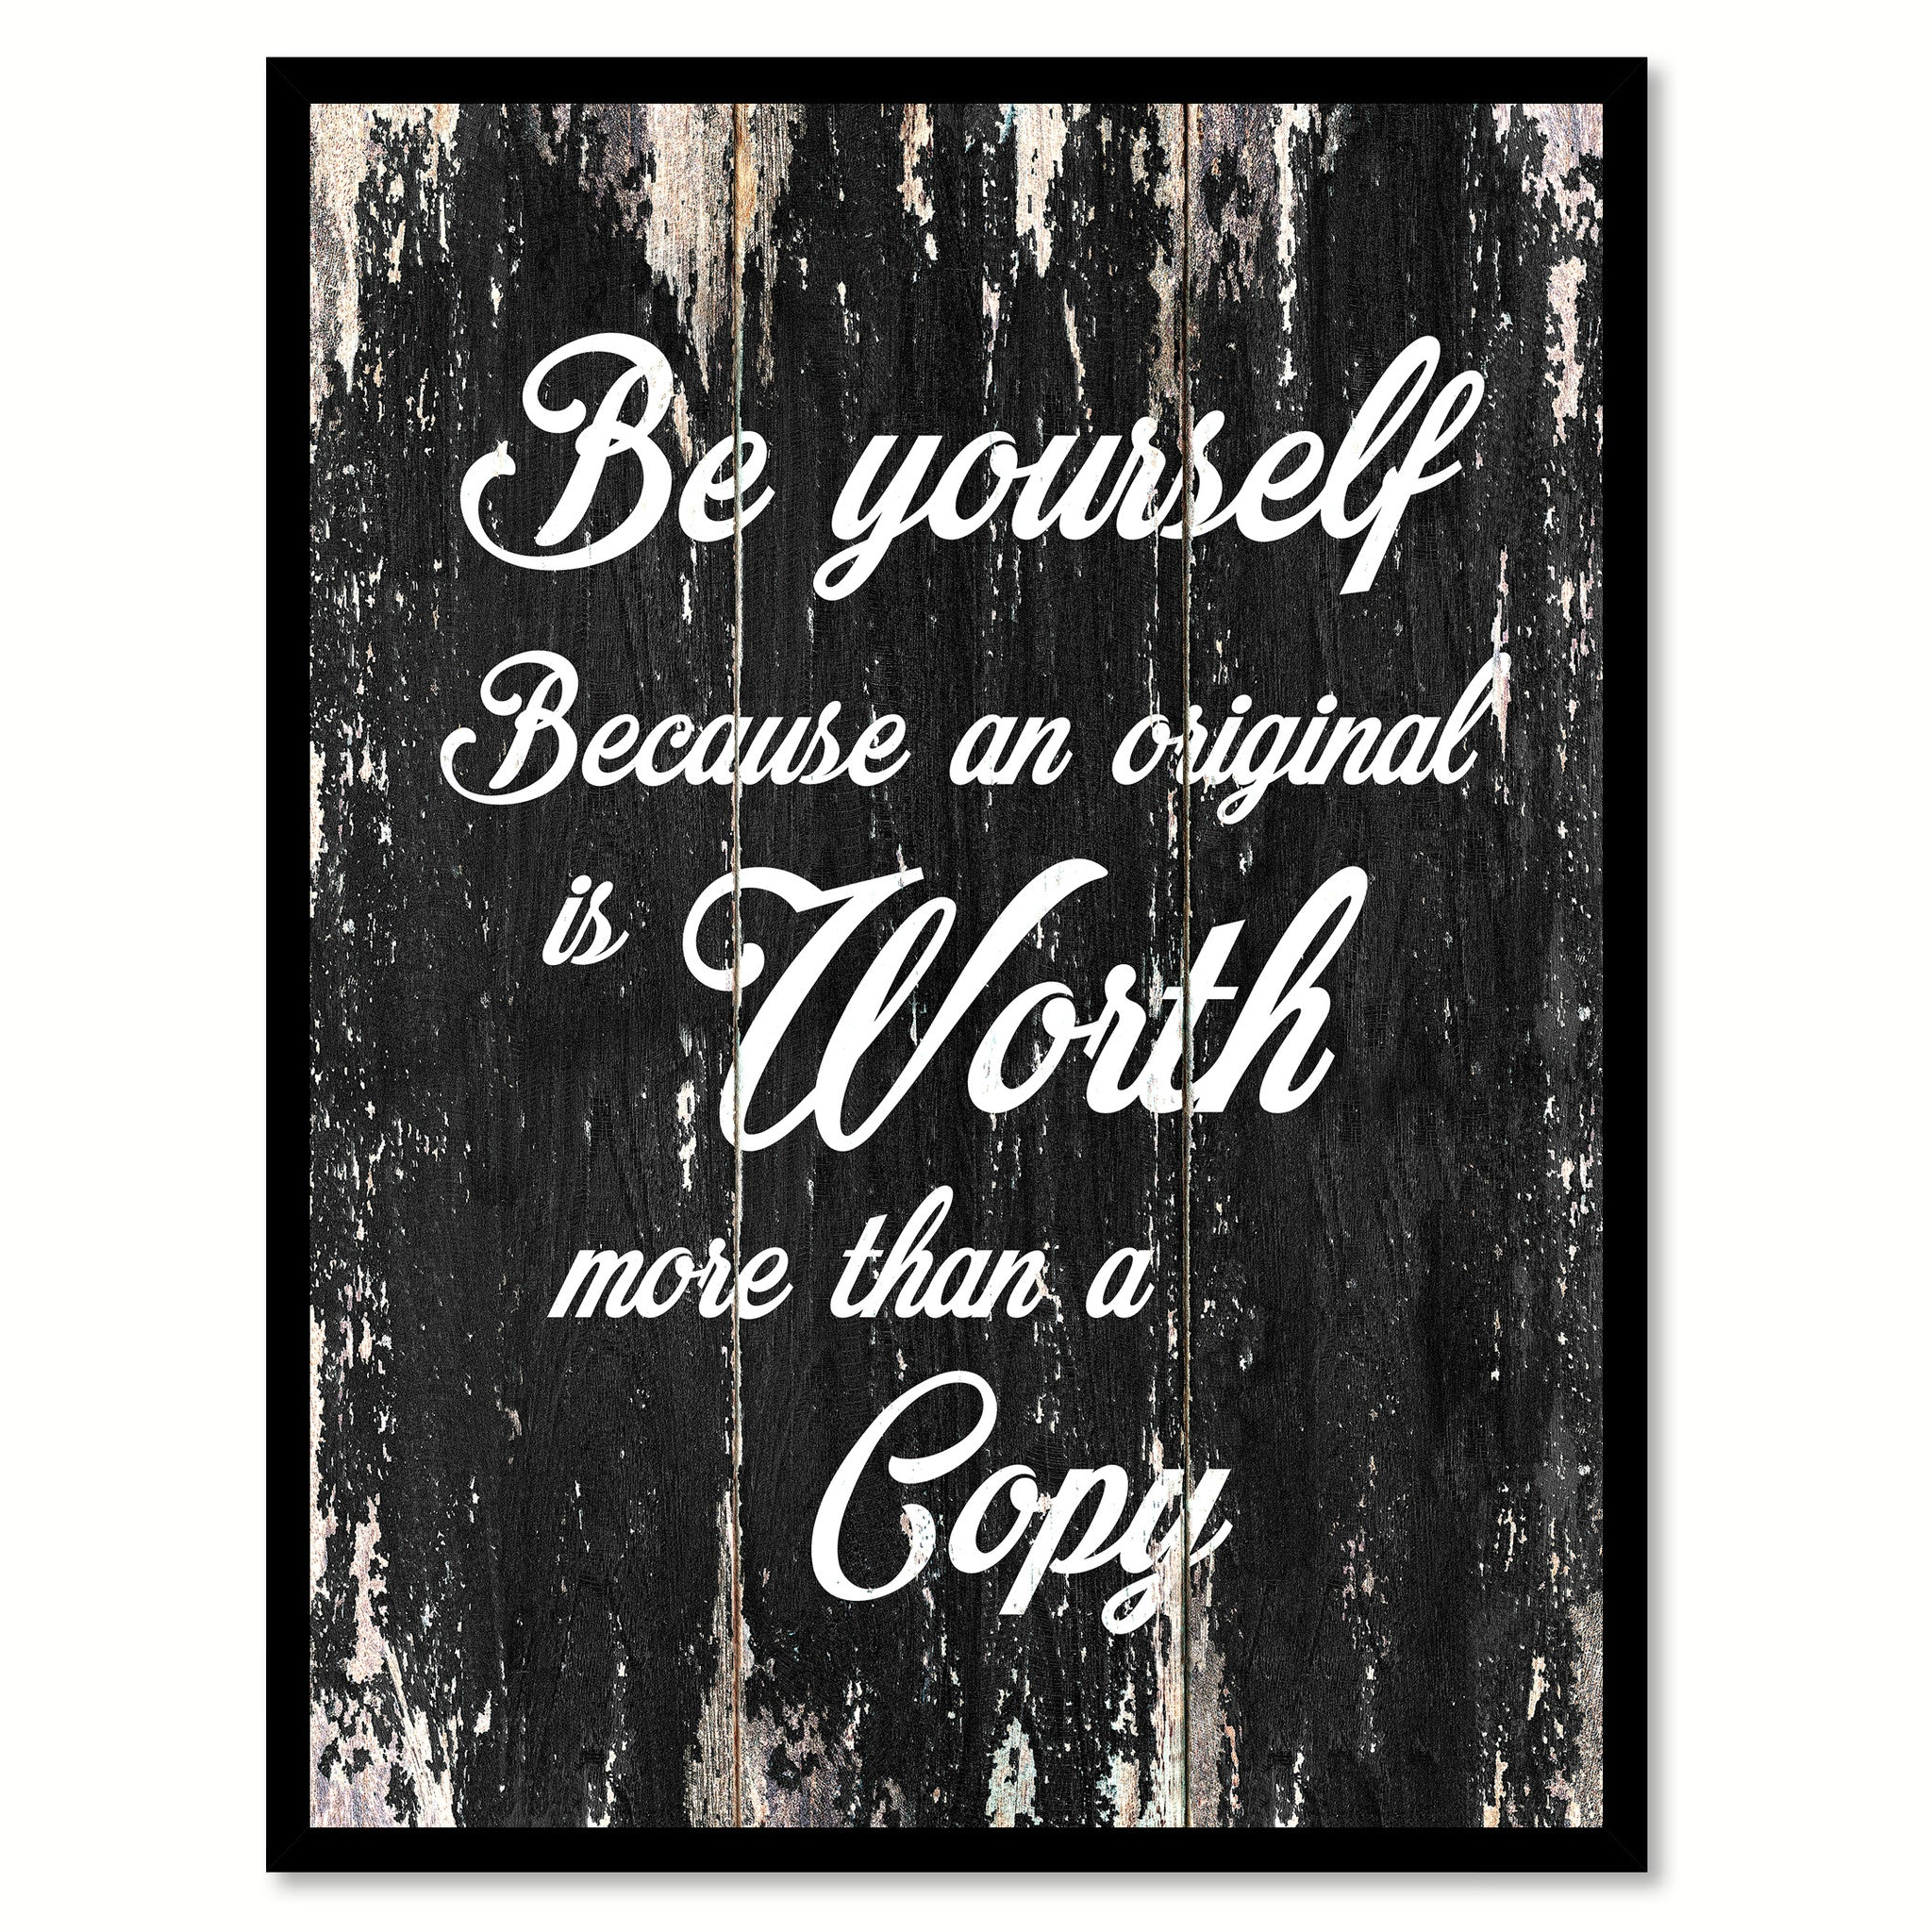 Be yourself because an original is worth more than a copy Motivational Quote Saying Canvas Print with Picture Frame Home Decor Wall Art